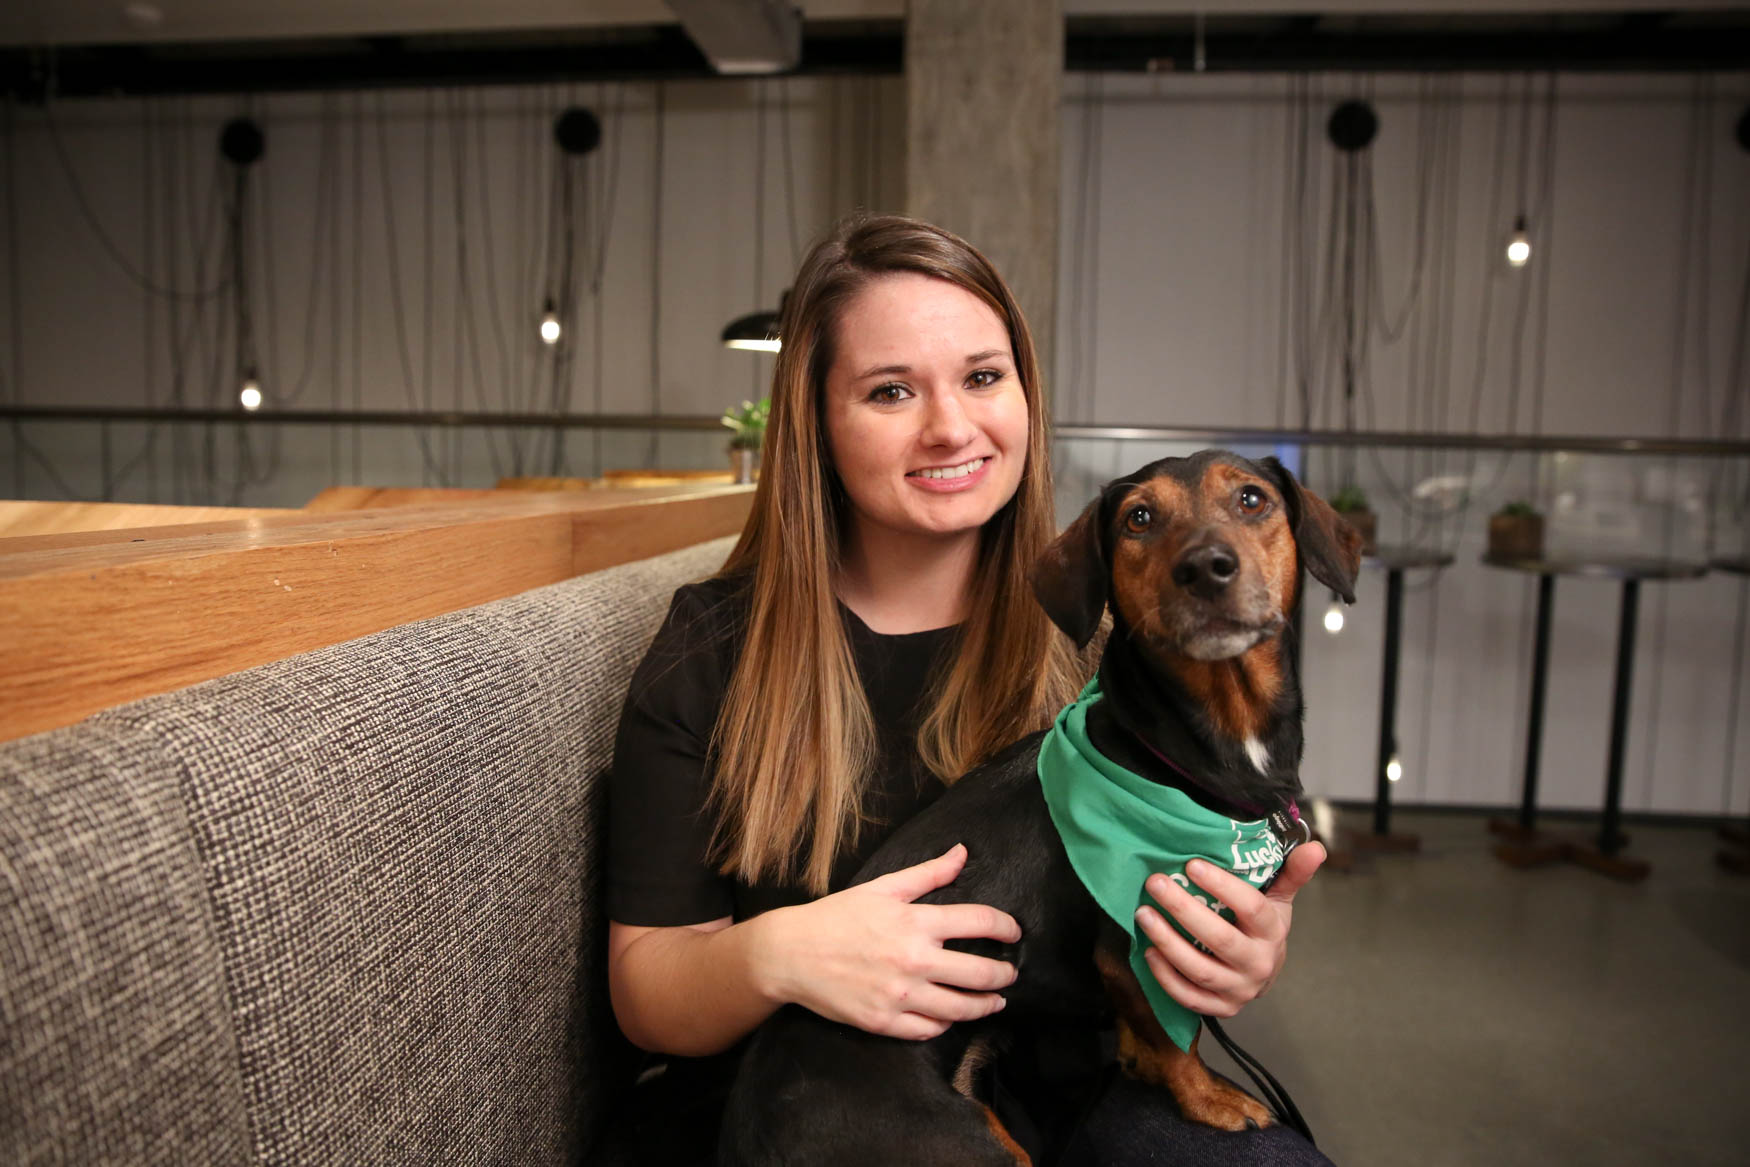 Meet Kirk and Brittany, a 5-year-old Dachshund mix{ } and a 32-year-old human respectively. Photo location: Moxy Washington, D.C. Downtown (Image: Amanda Andrade-Rhoades/ DC Refined)